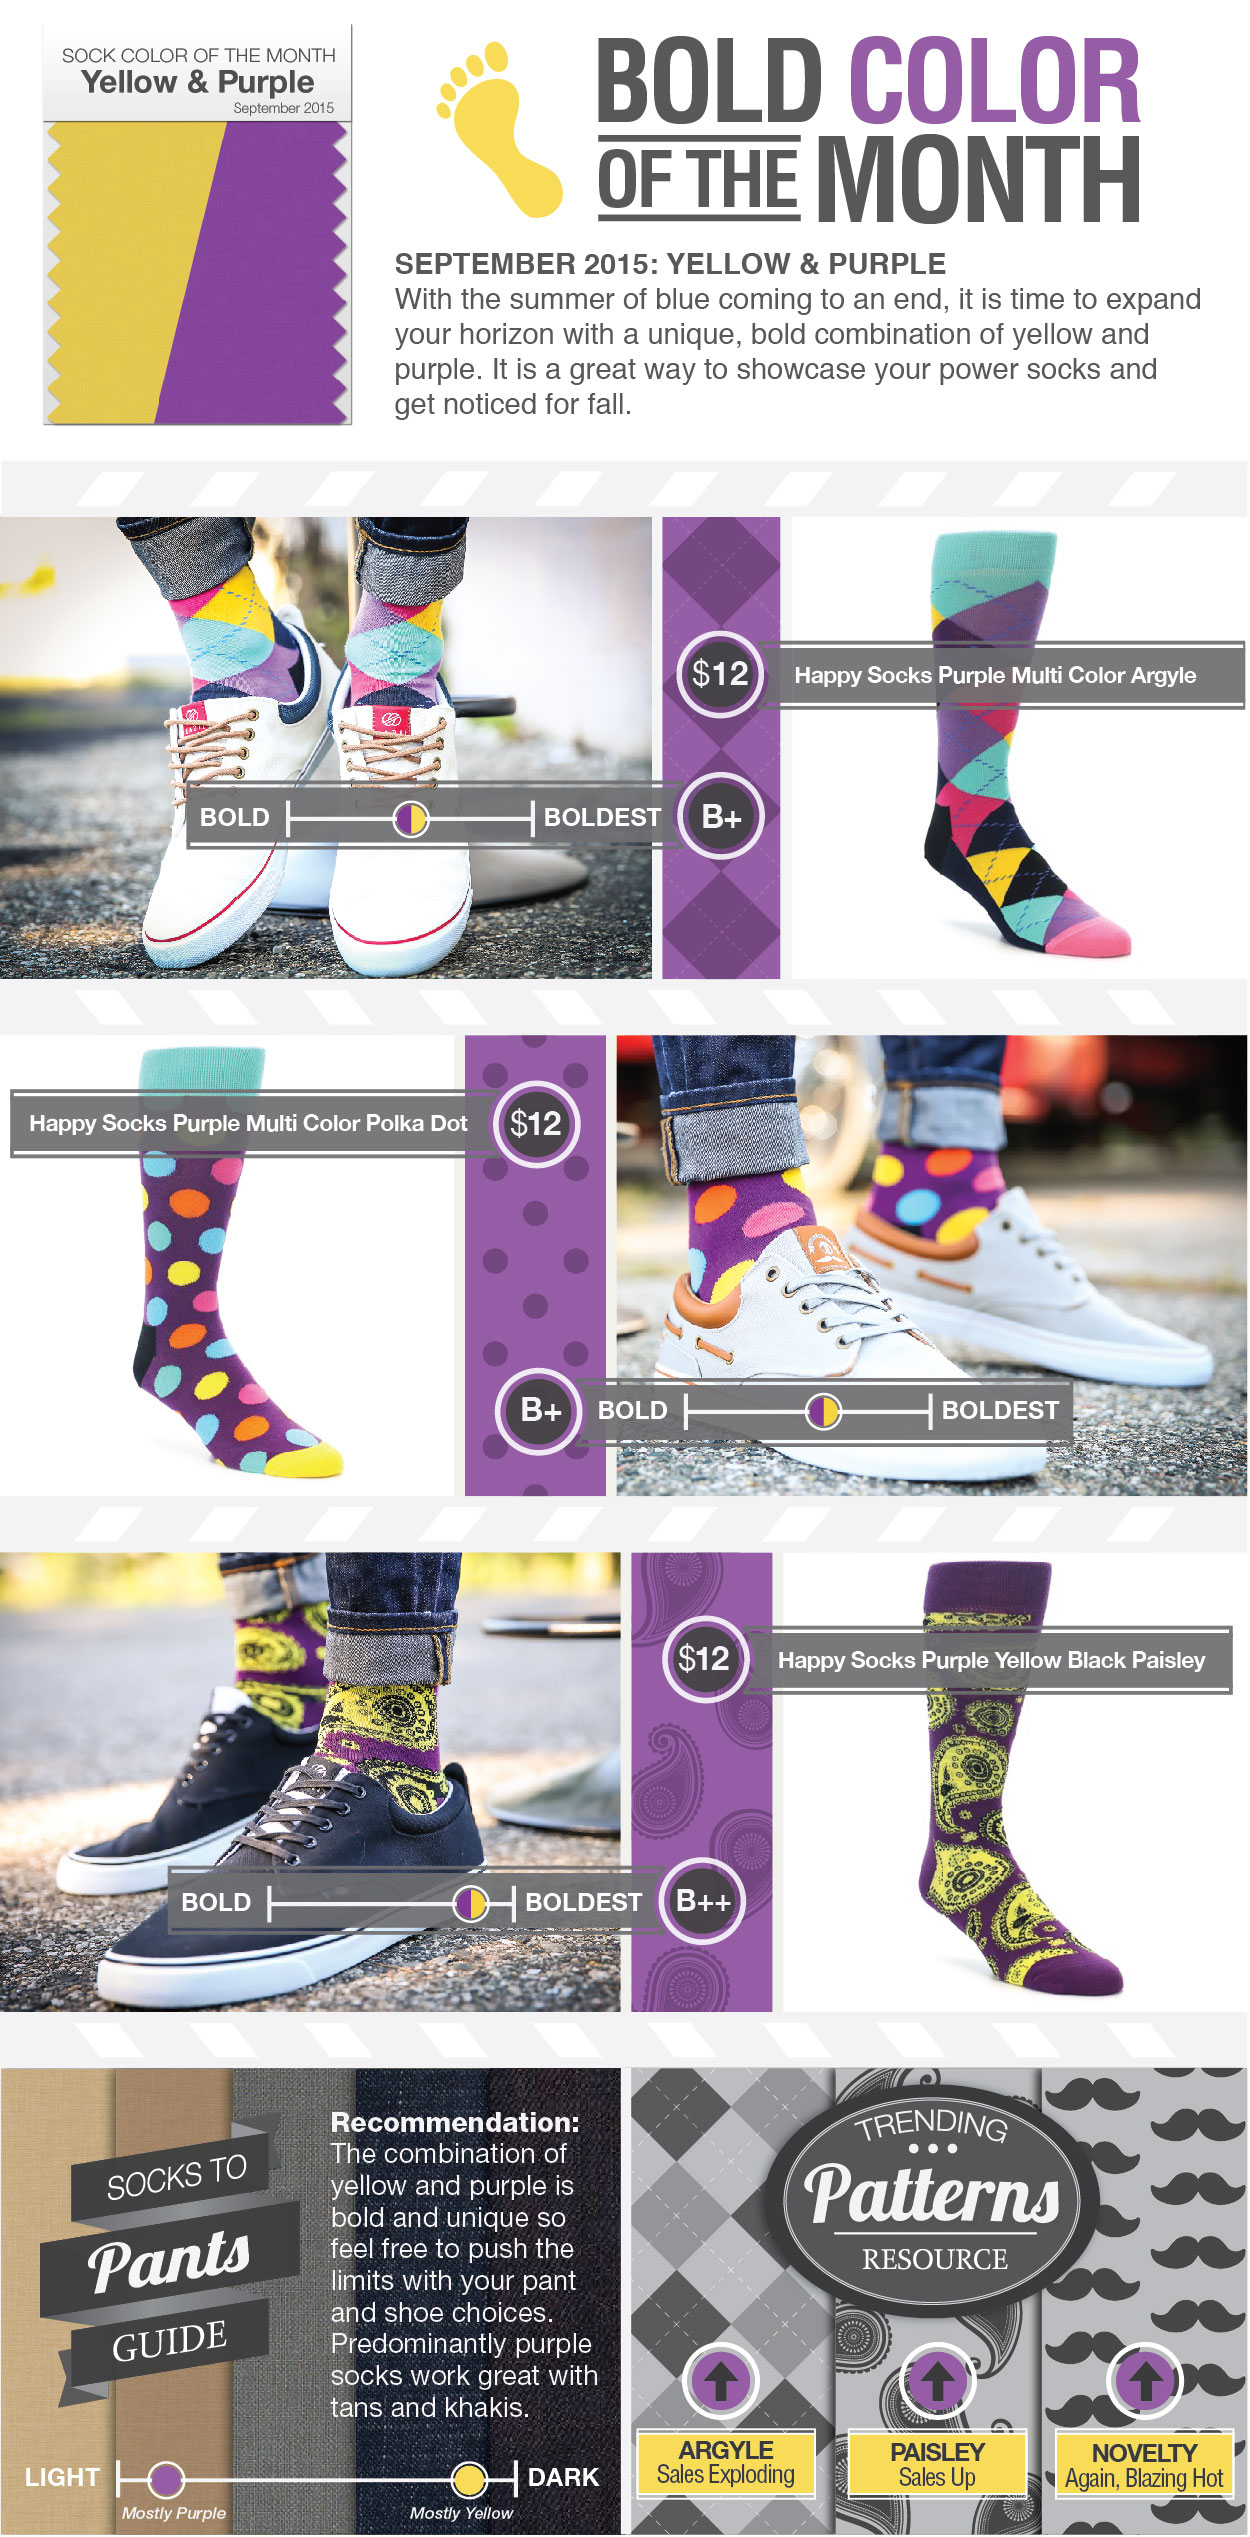 September Socks Color of the Month: Purple and Yellow